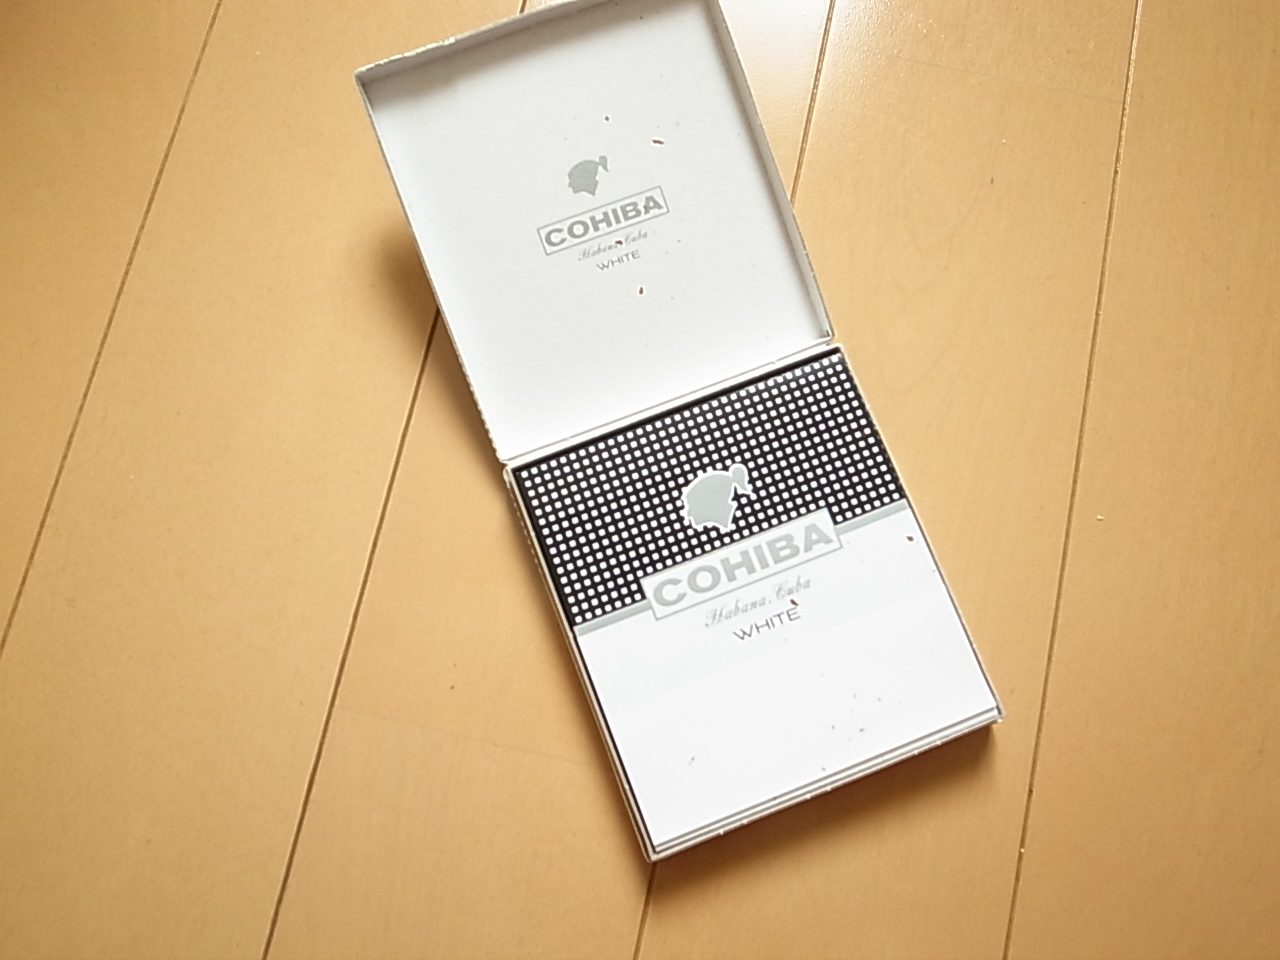 Cohiba mini white 4